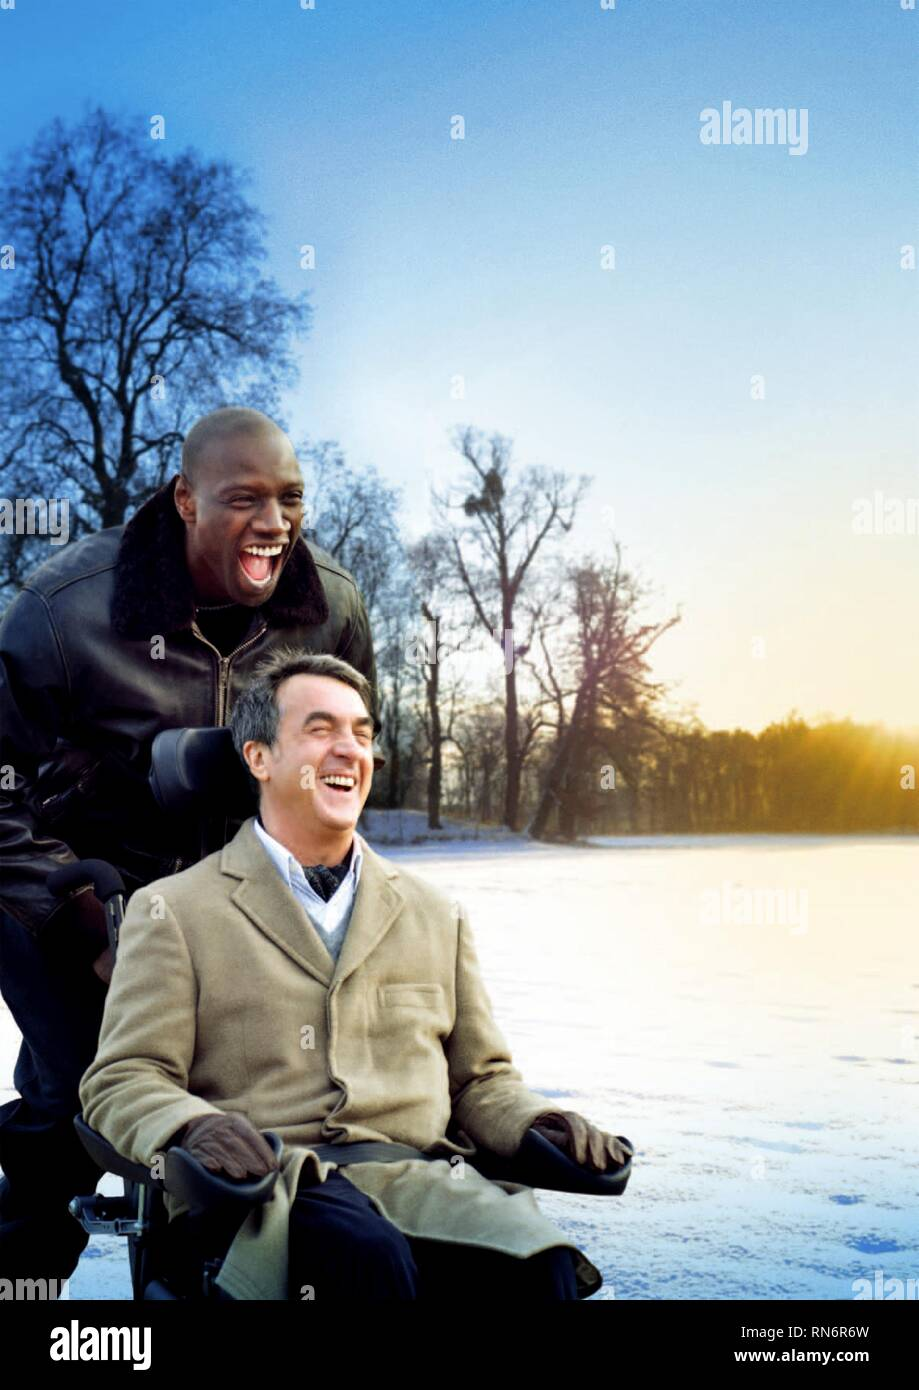 SY,CLUZET, INTOUCHABLES, 2011 - Stock Image